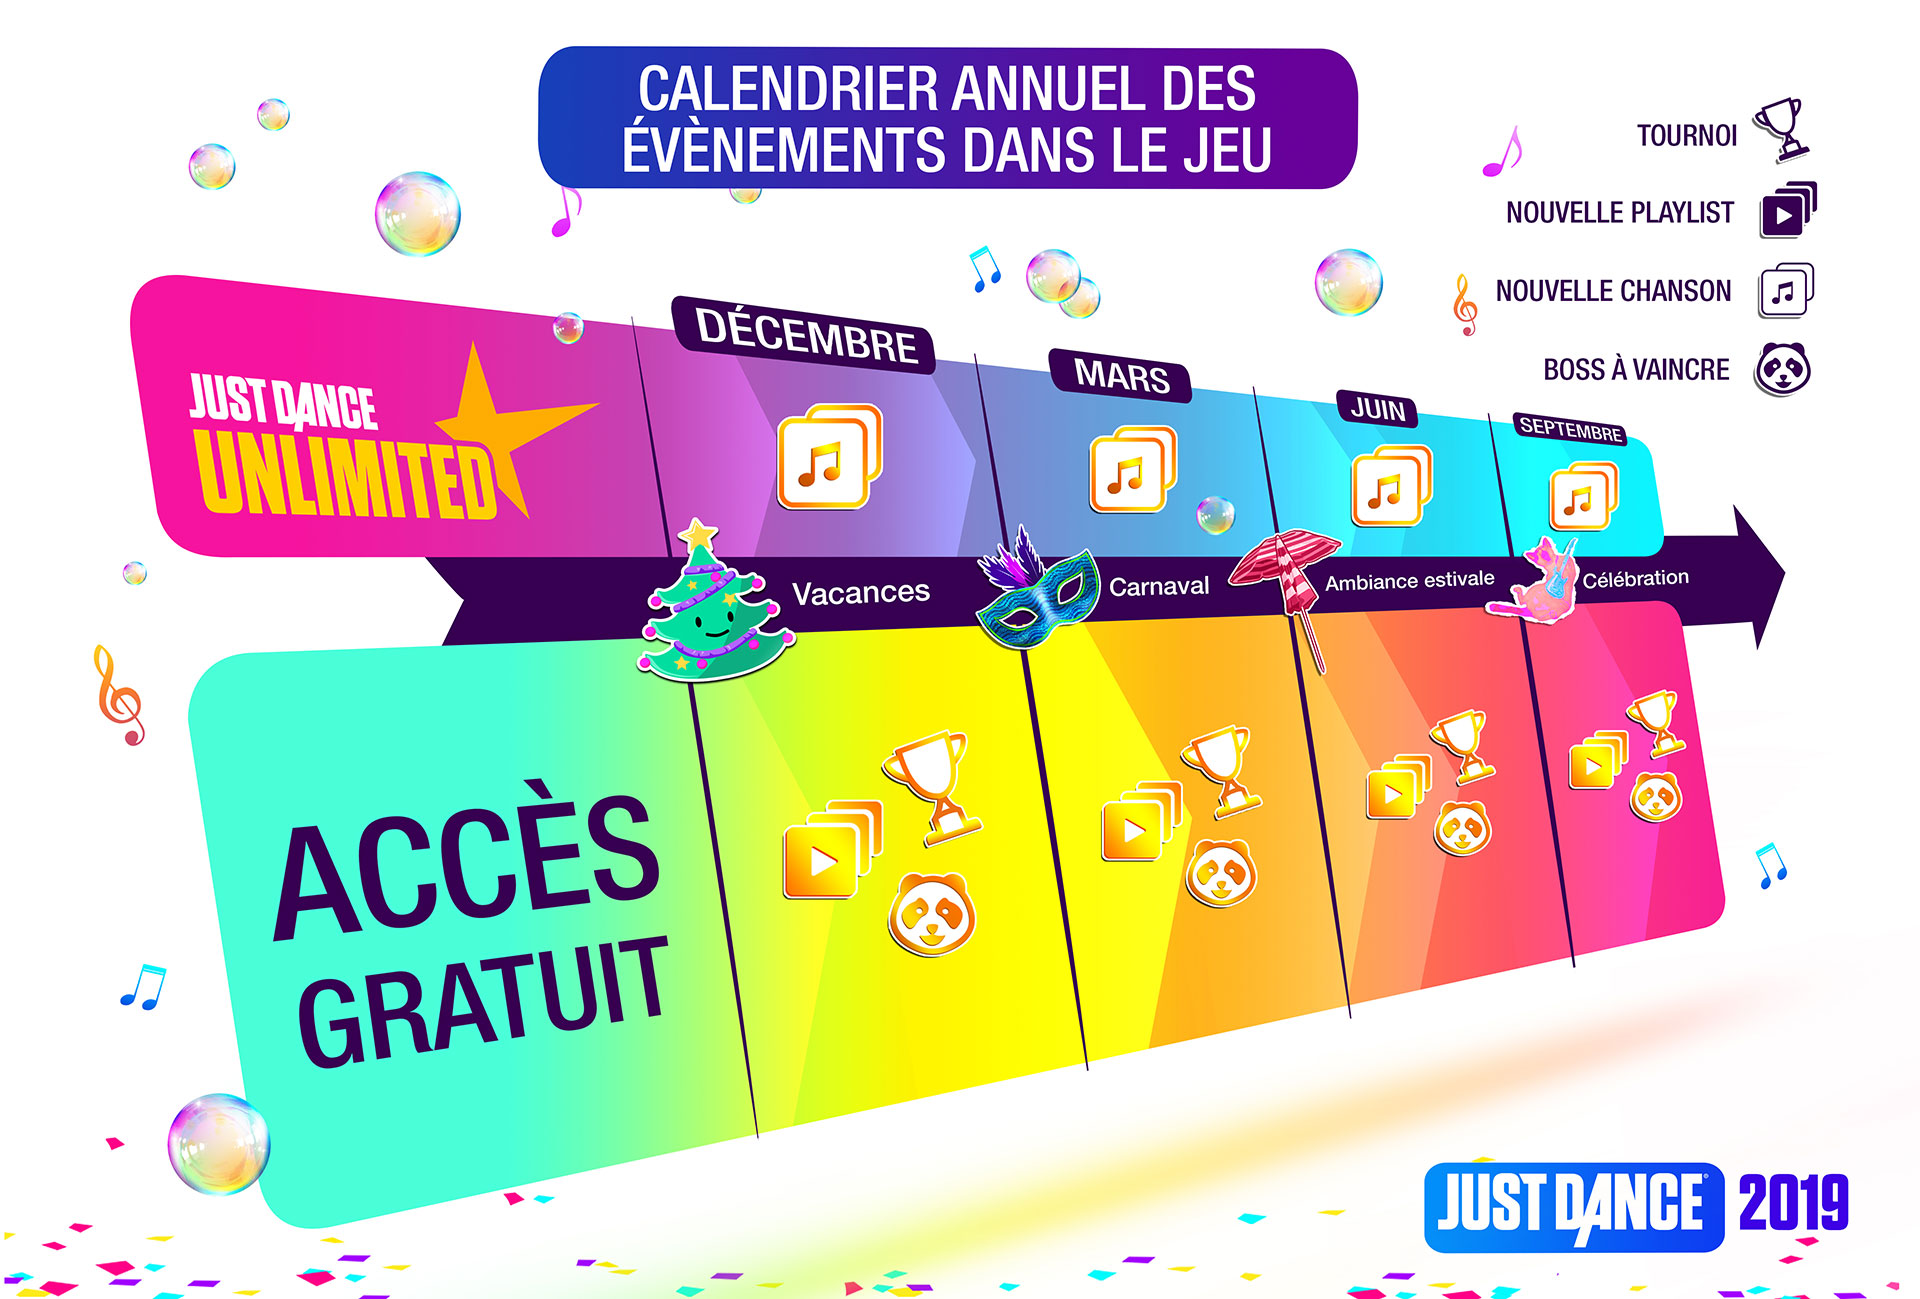 JD19_POST_LAUNCH_YEARLY_CALENDAR_FR